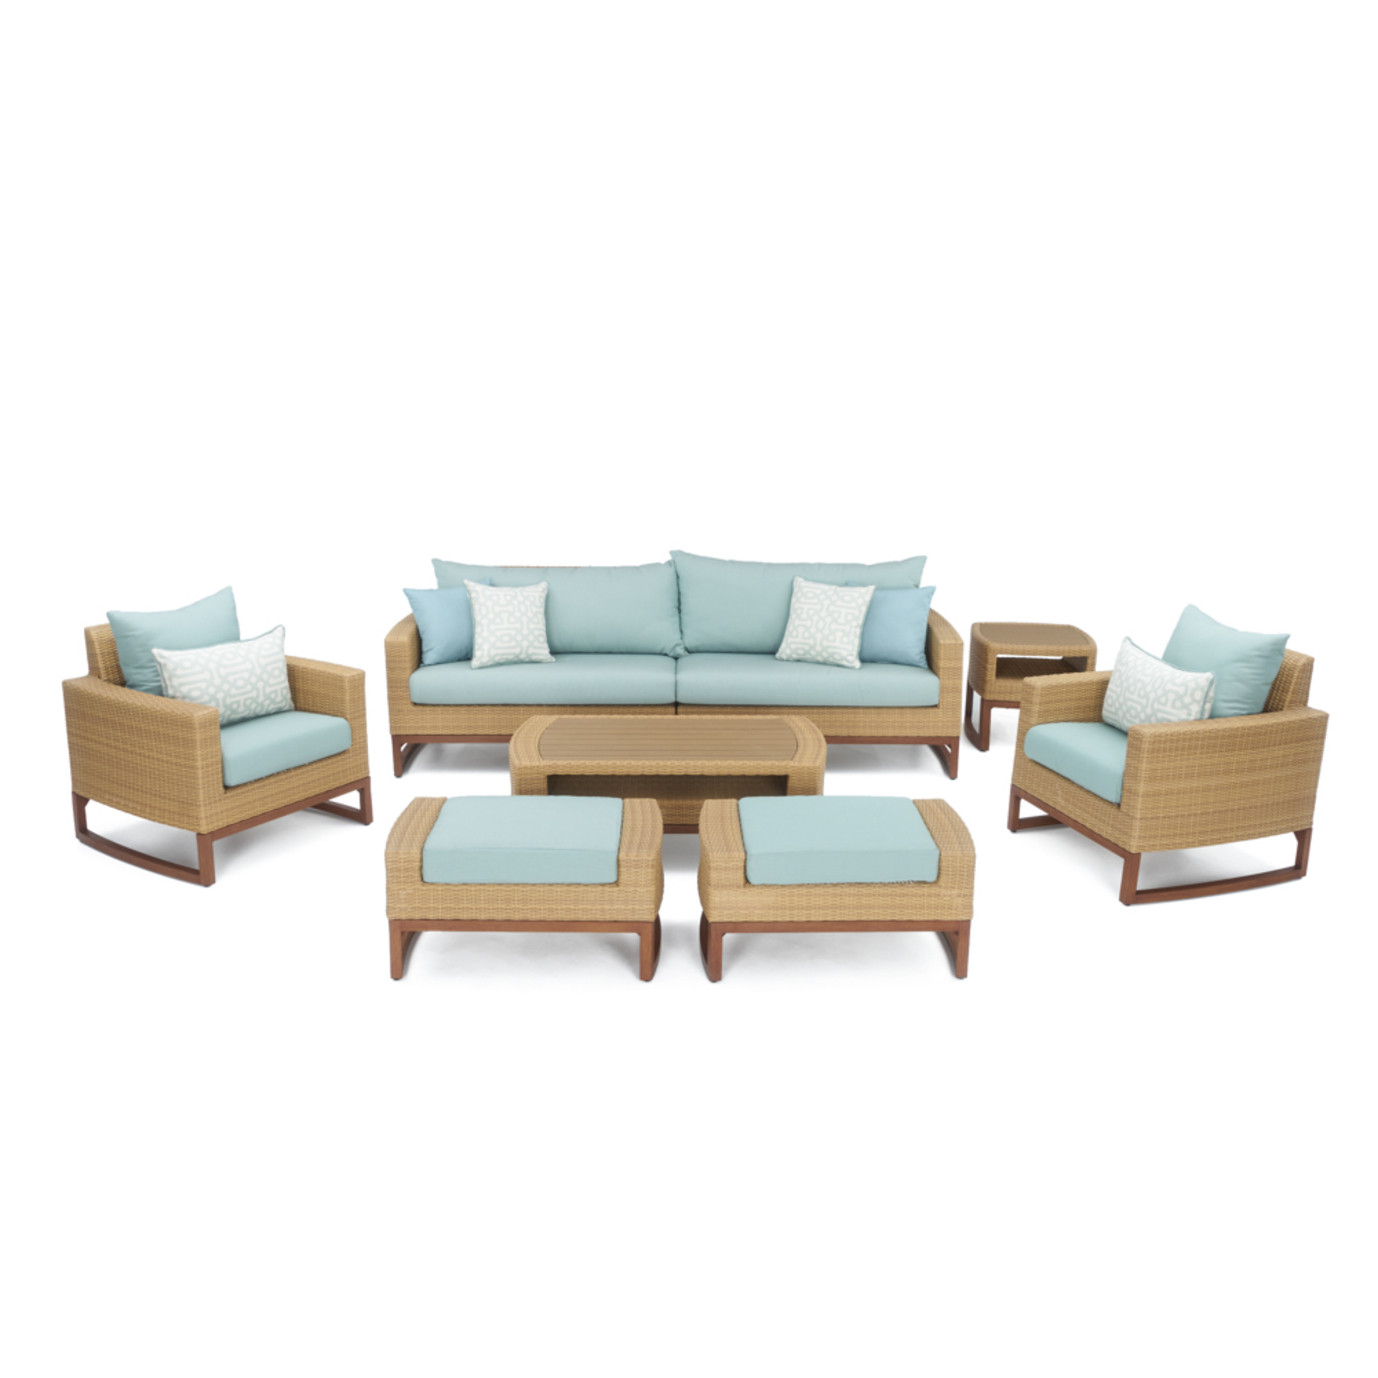 Mili™ 8 Piece Deep Seating Set - Spa Blue